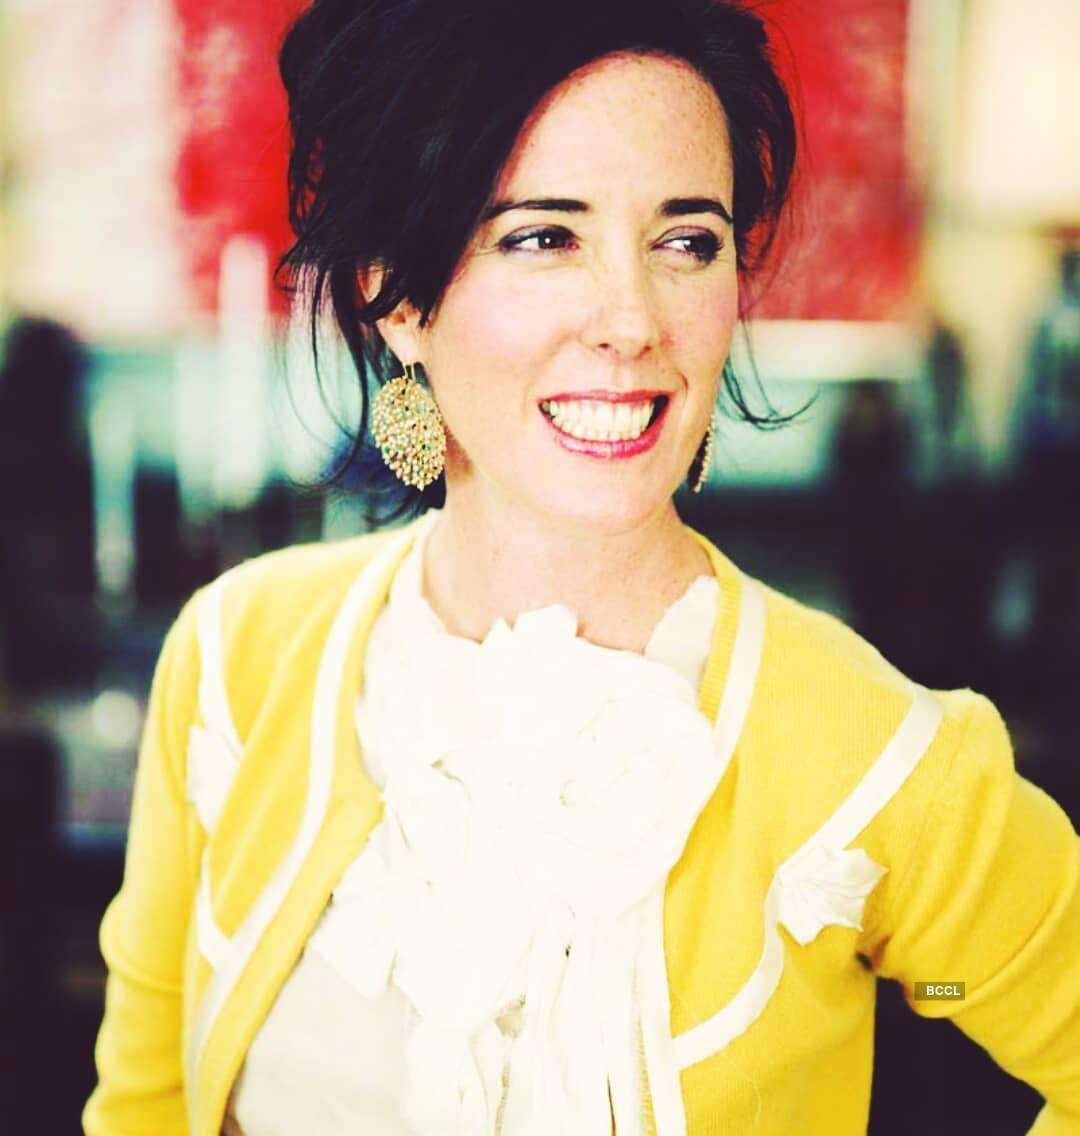 Renowned designer Kate Spade committed suicide